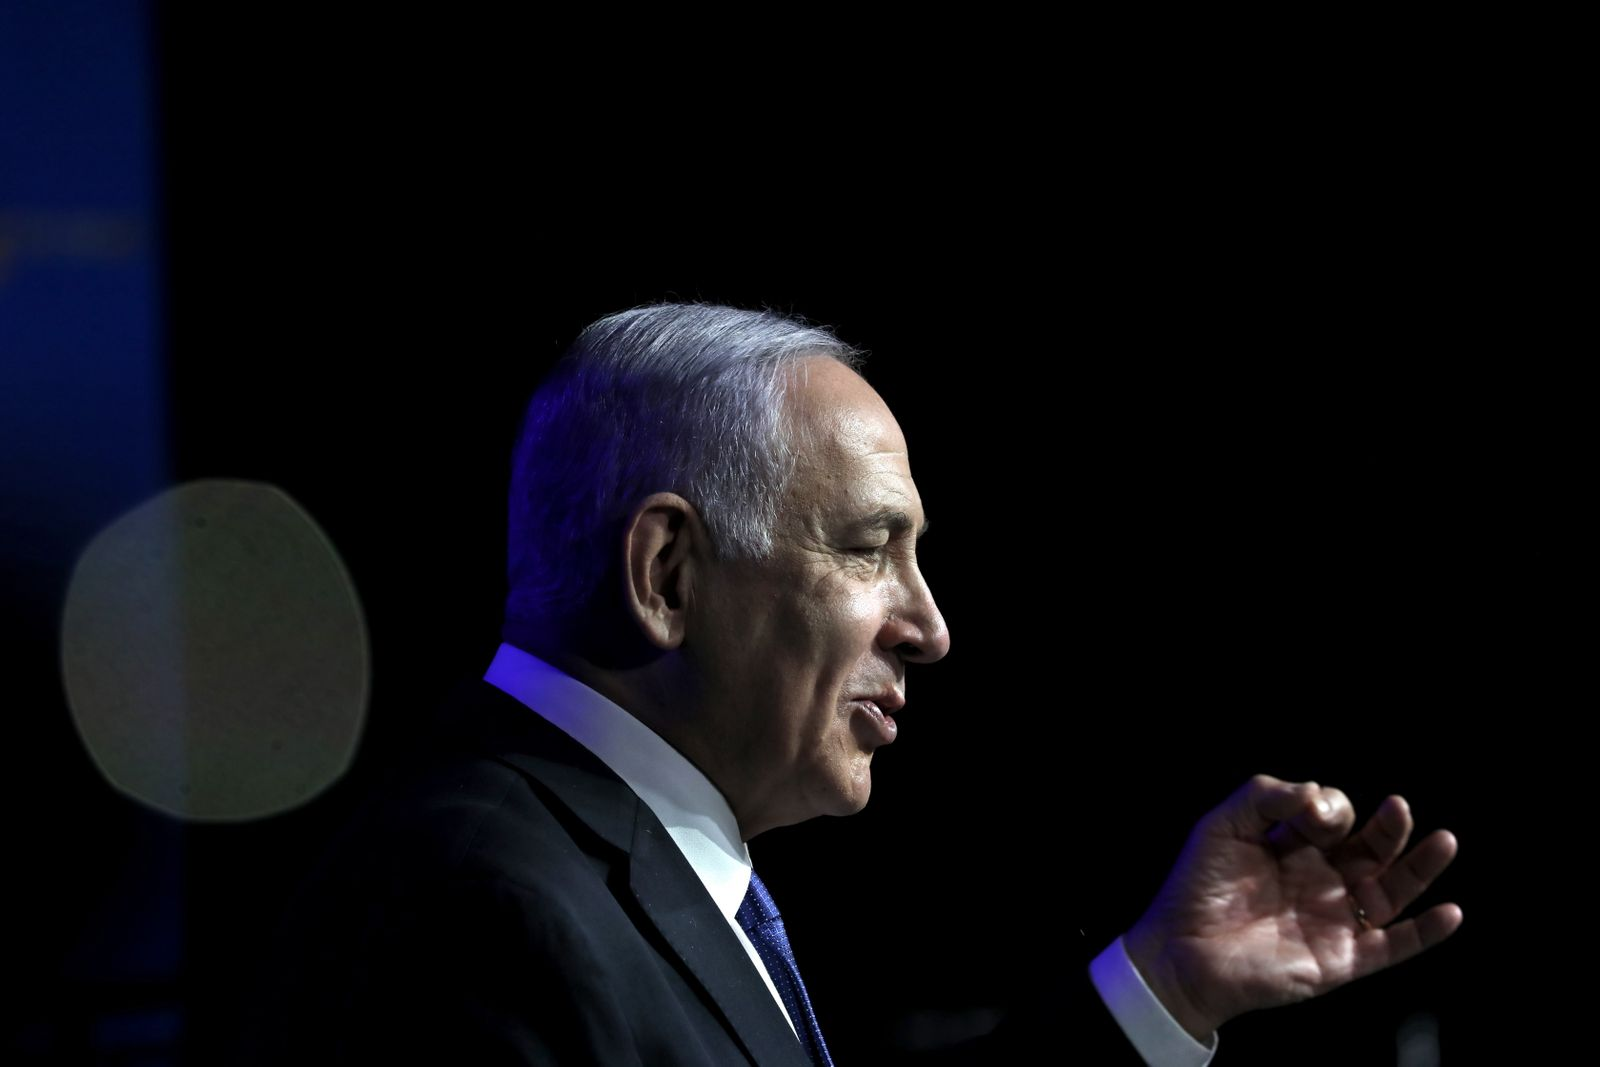 Netanyahu attends ceremony honoring the COVID-19 medical teams